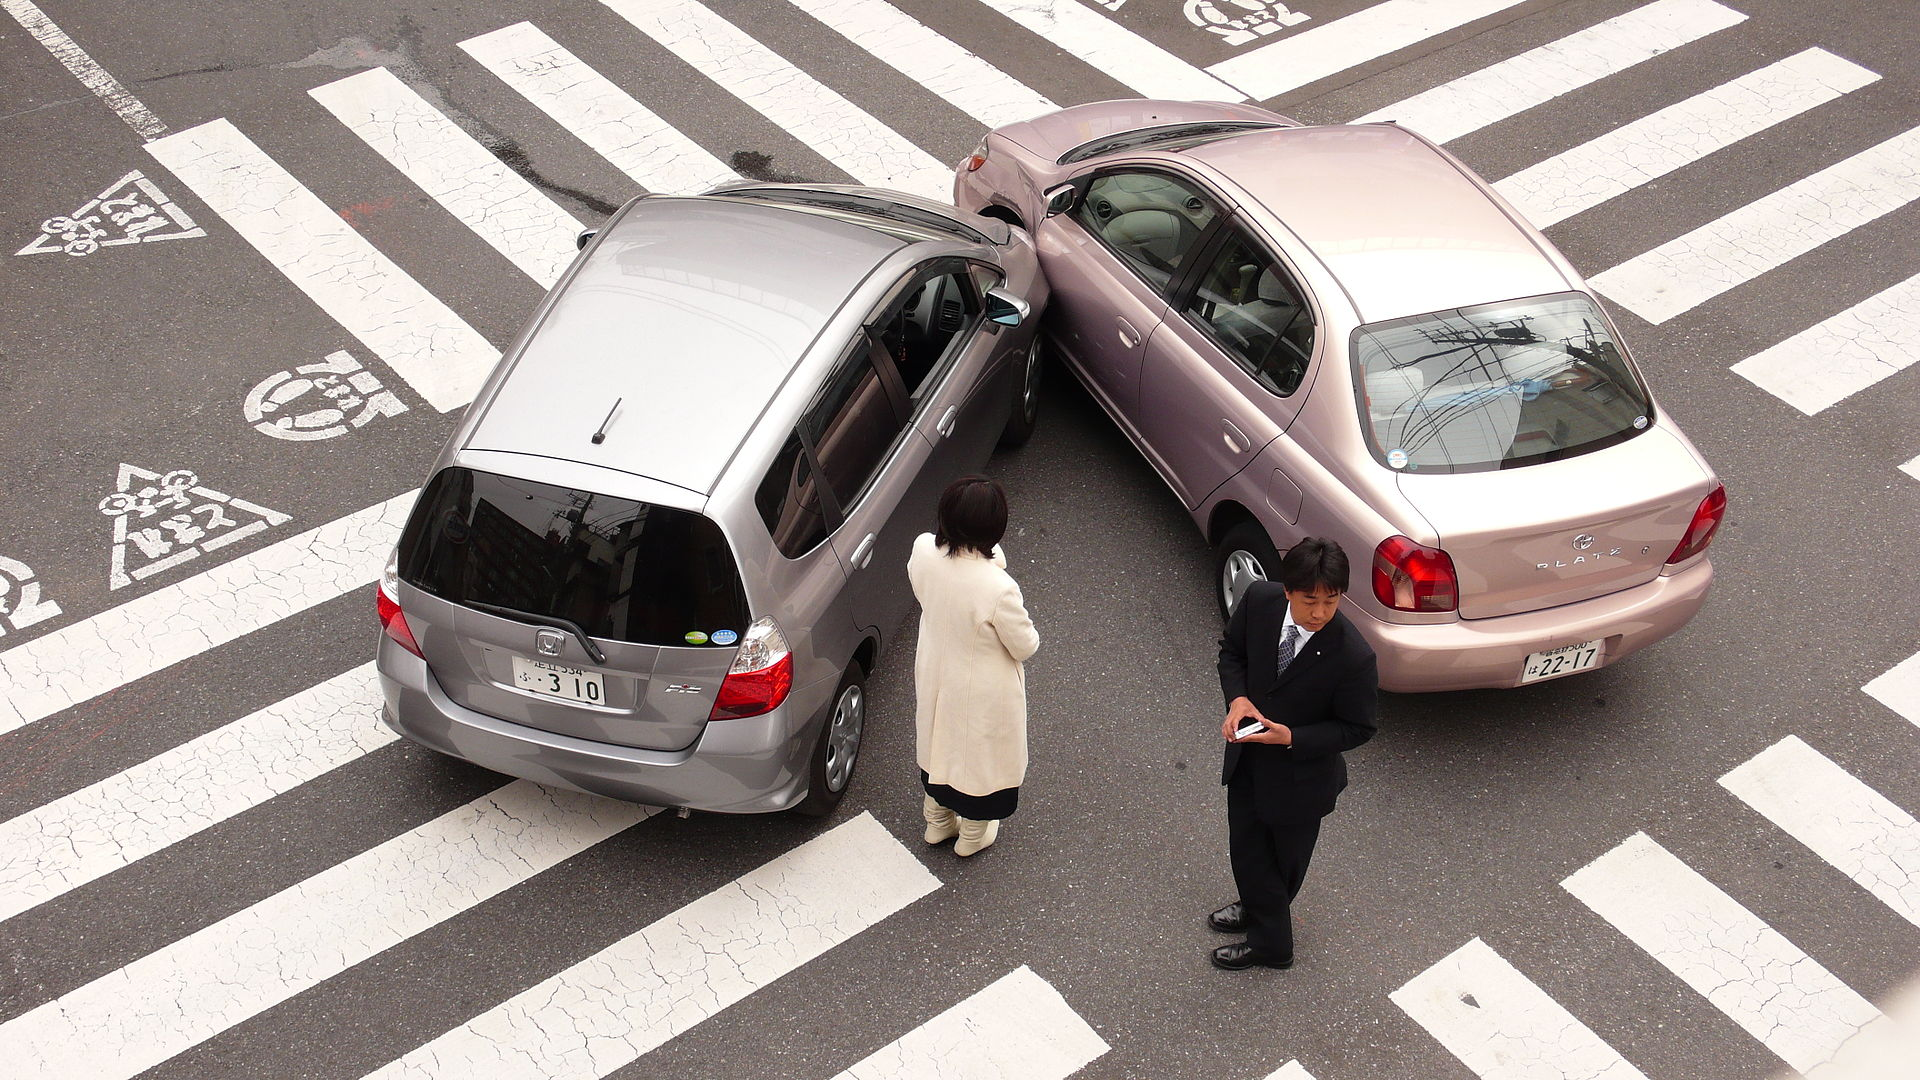 pedestrian injuries and car speed